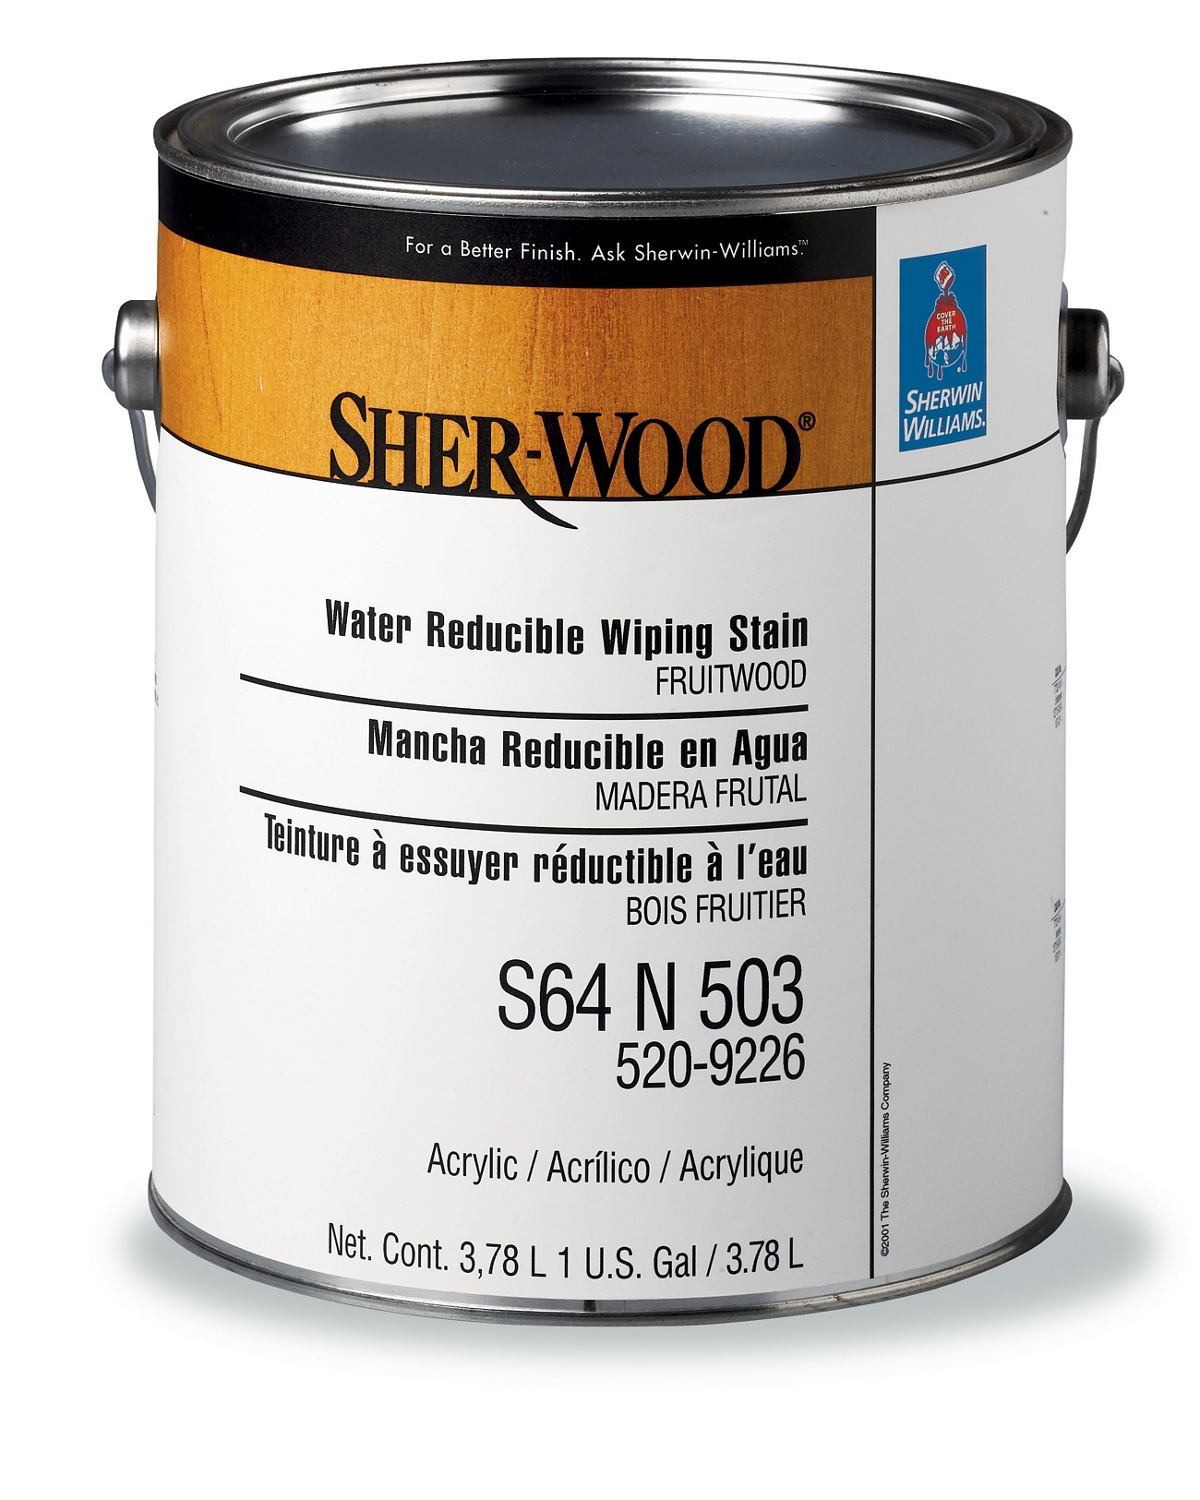 SHER-WOOD® Water Reducible Wiping Stains